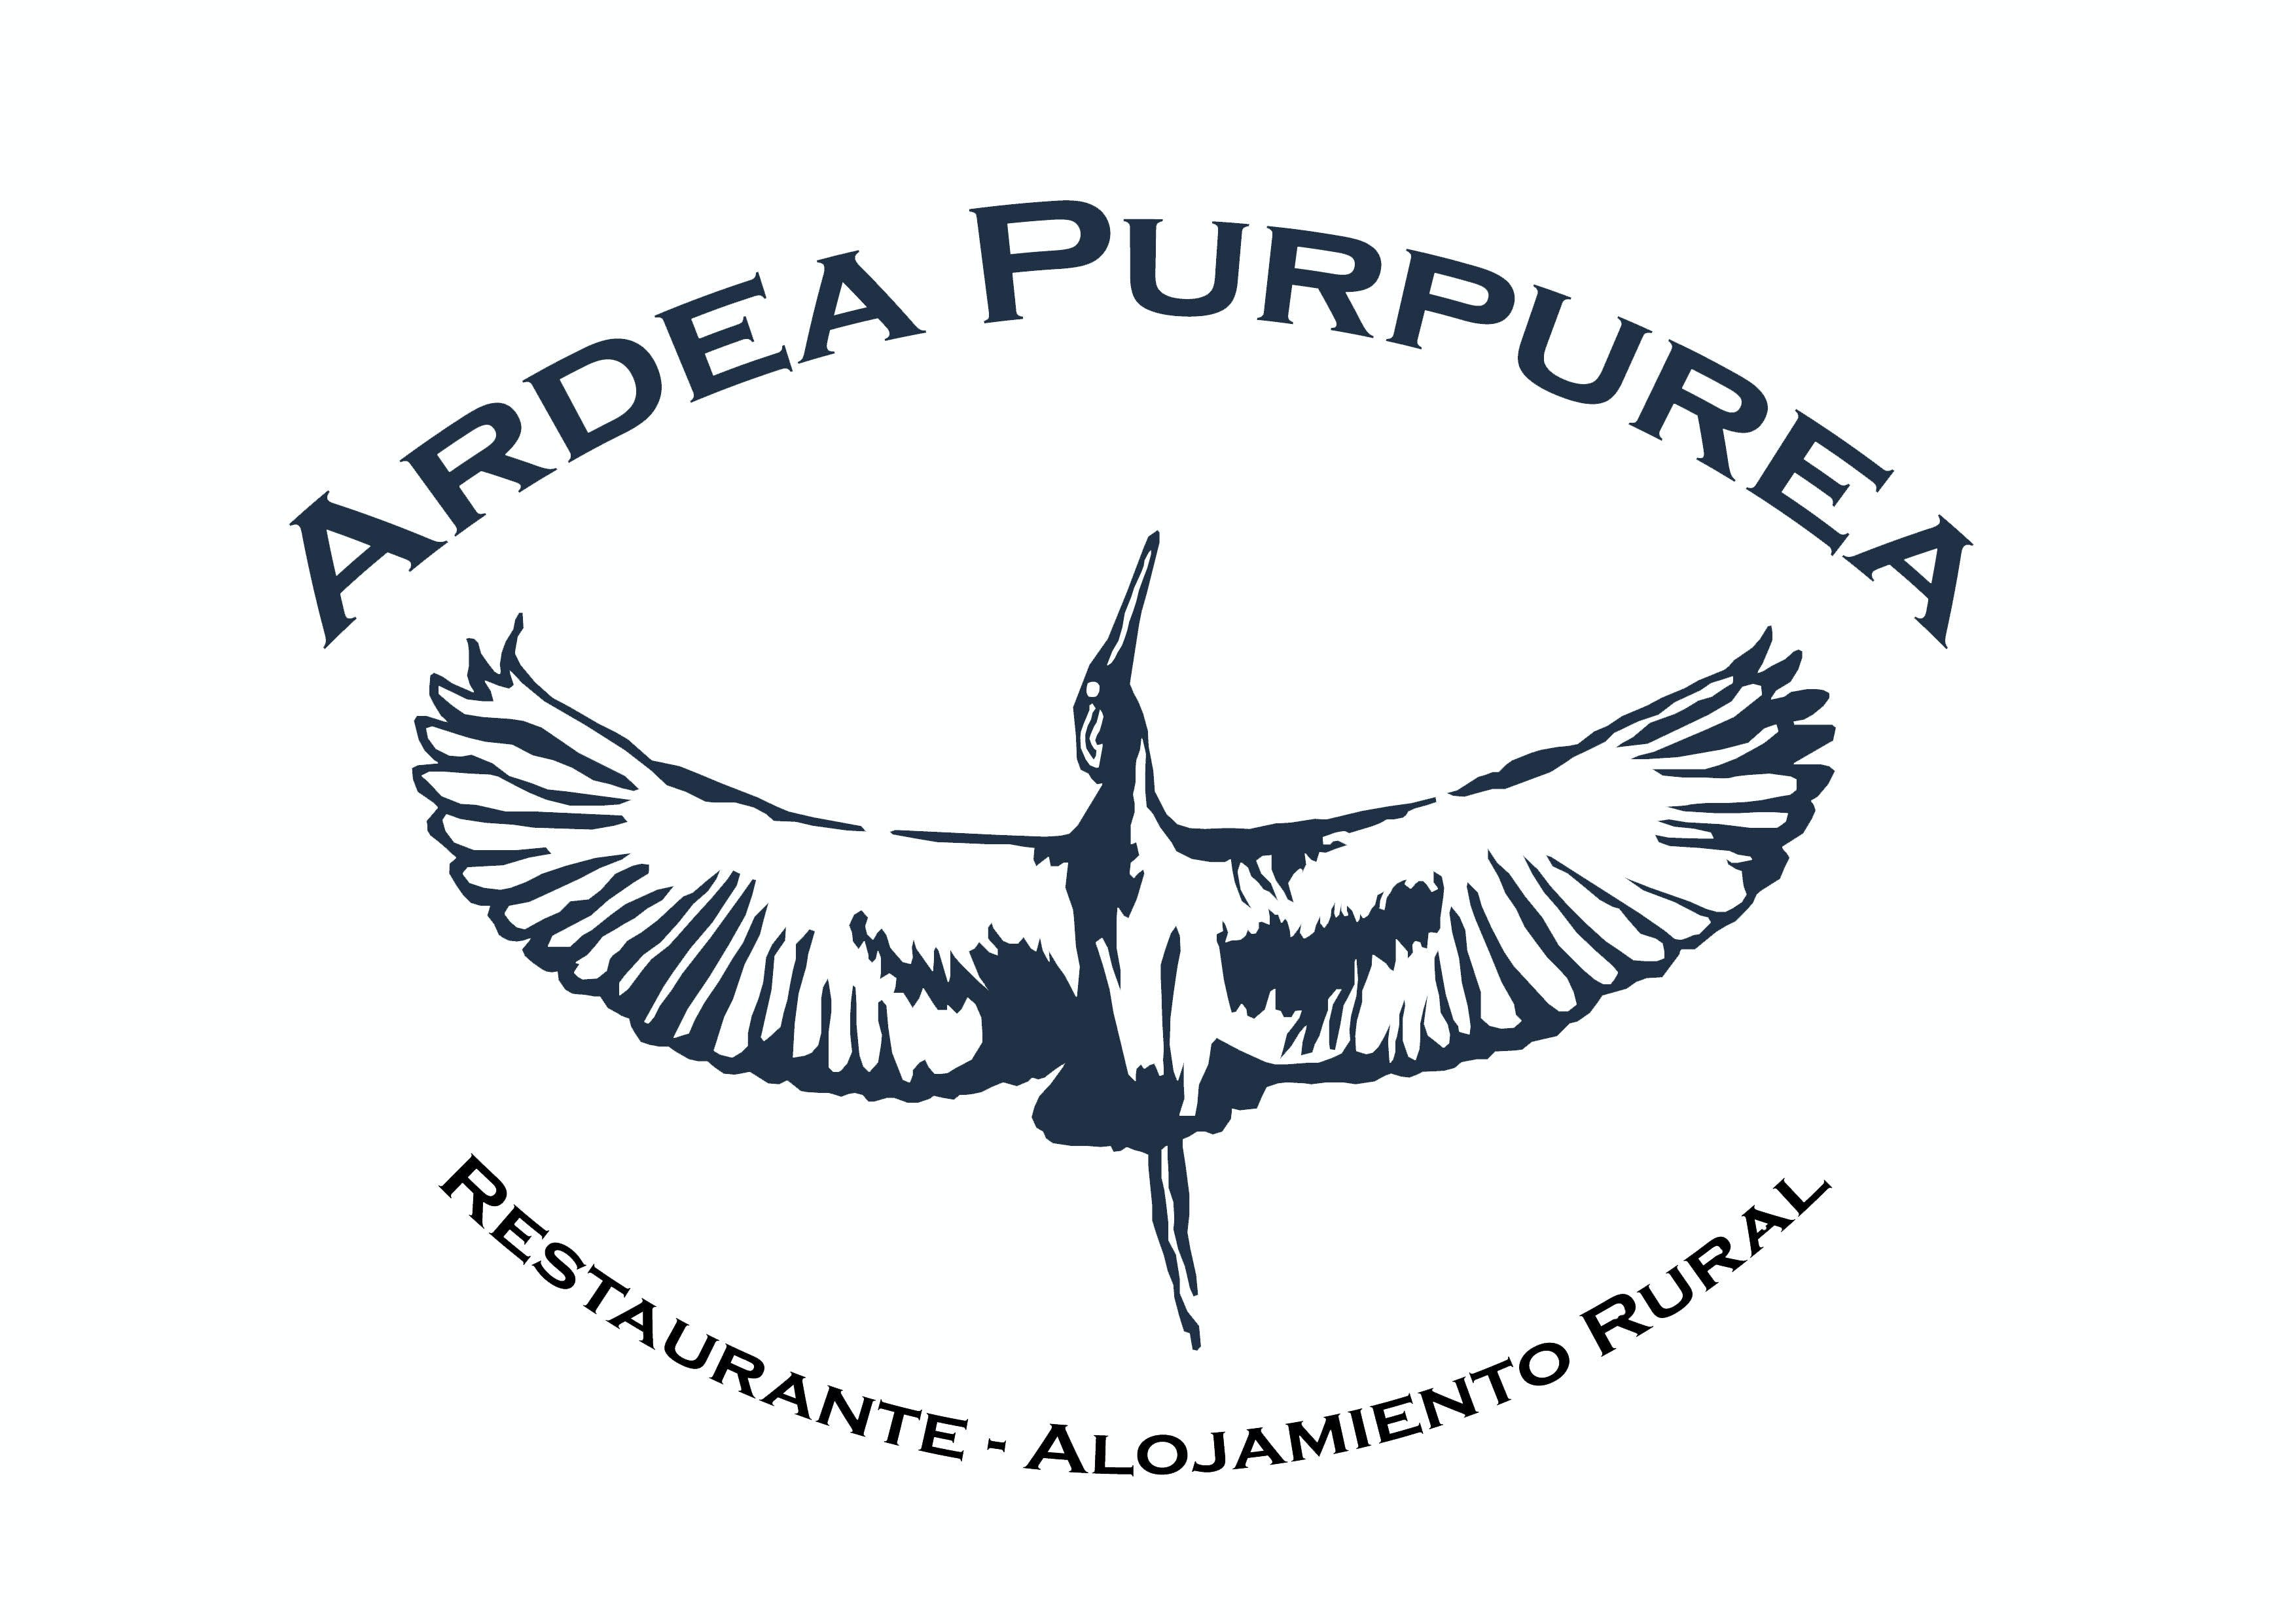 Ardea Purpurea Lodge